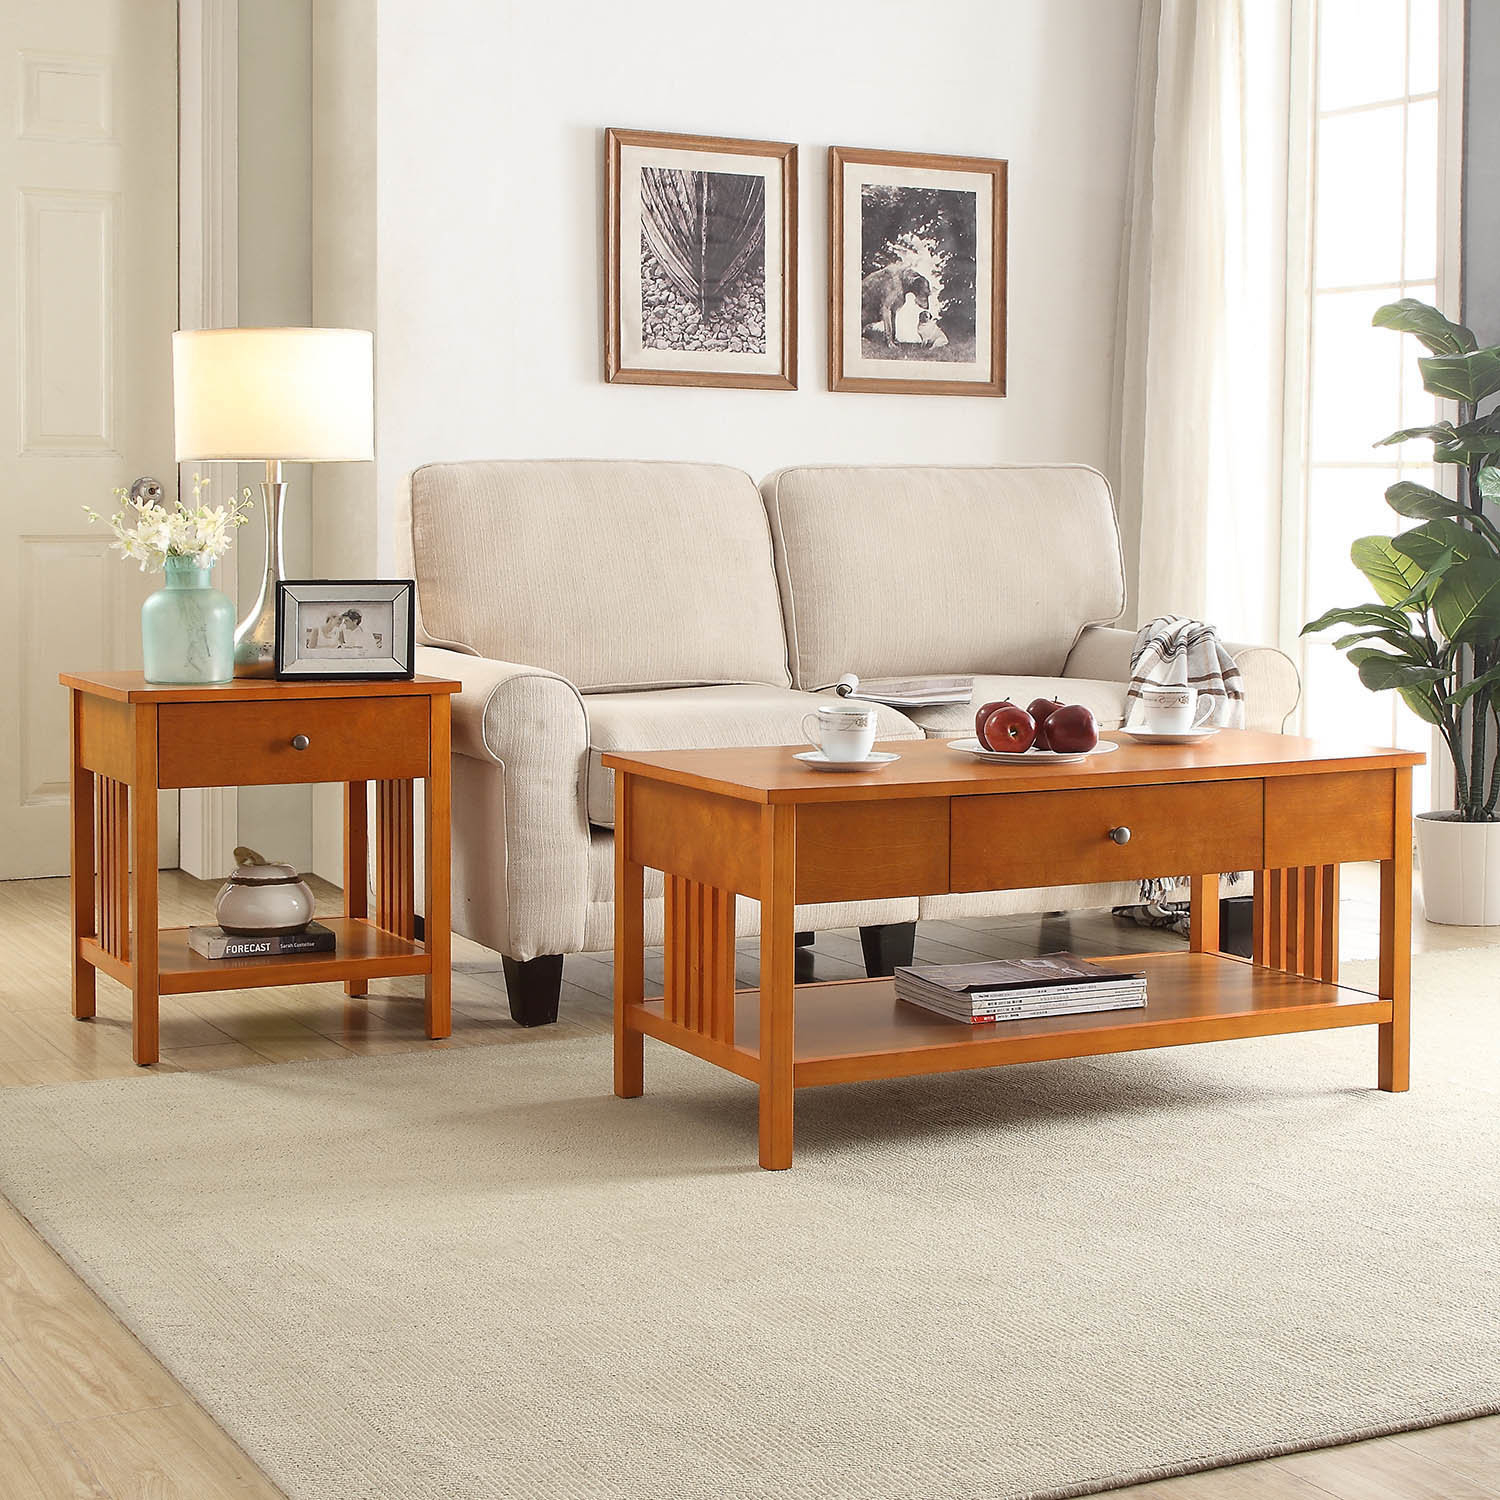 Bechtel 2 Piece Coffee Table Set throughout Mission Style Living Room Set